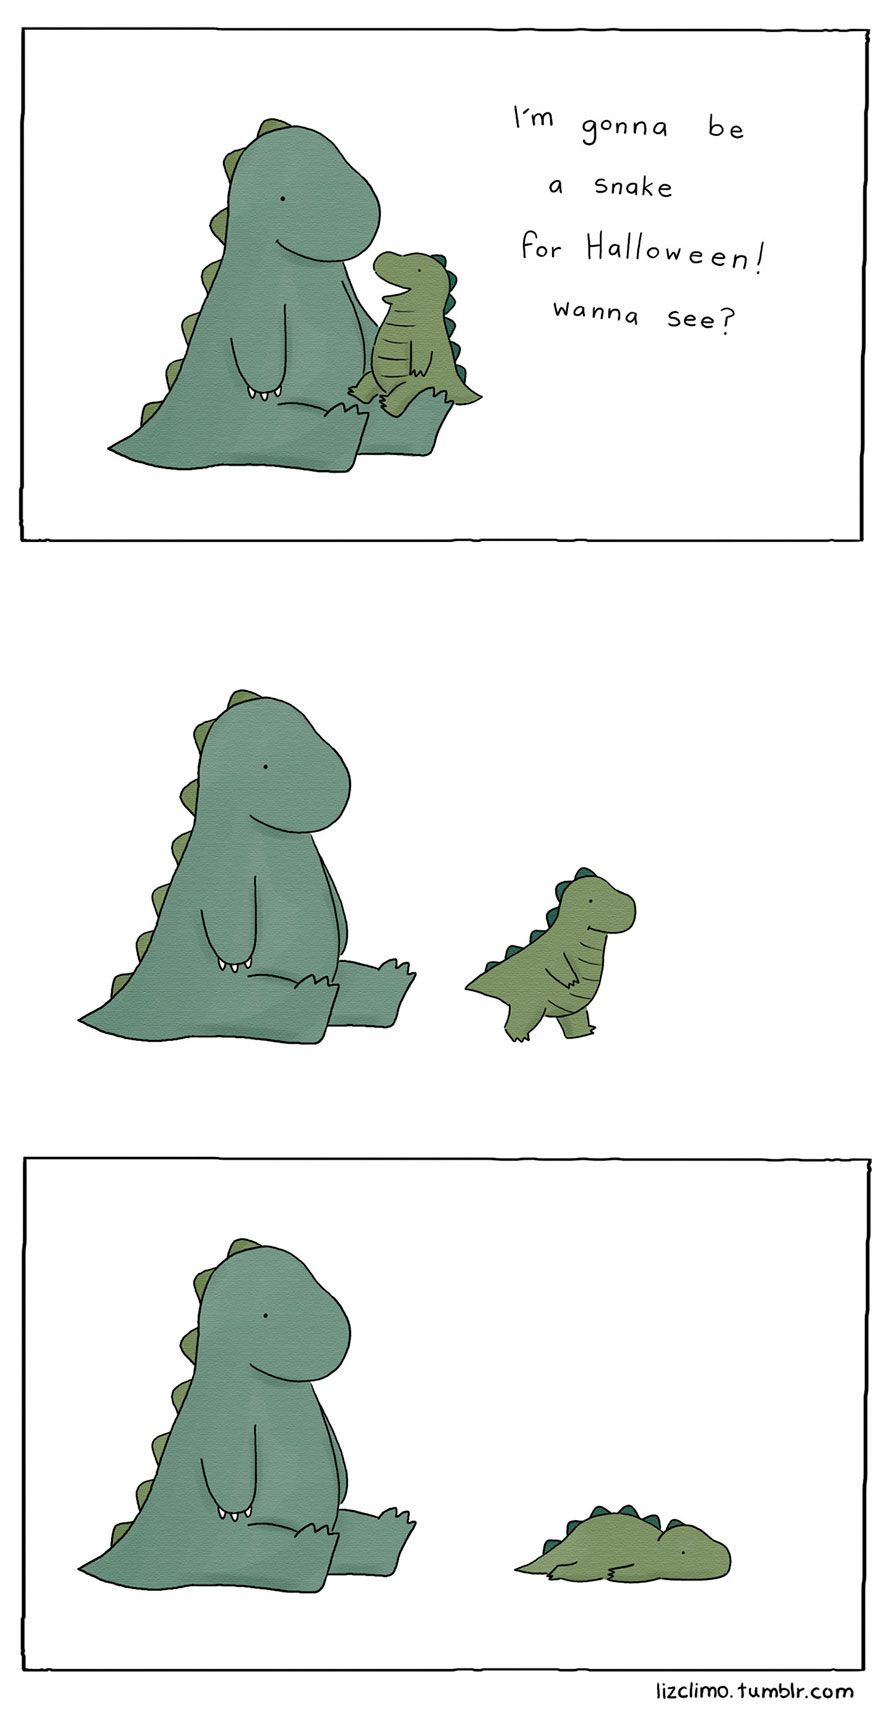 Simpsons Illustrator Shows What Would Happen If Animals Celebrated Halloween (42 Pics)